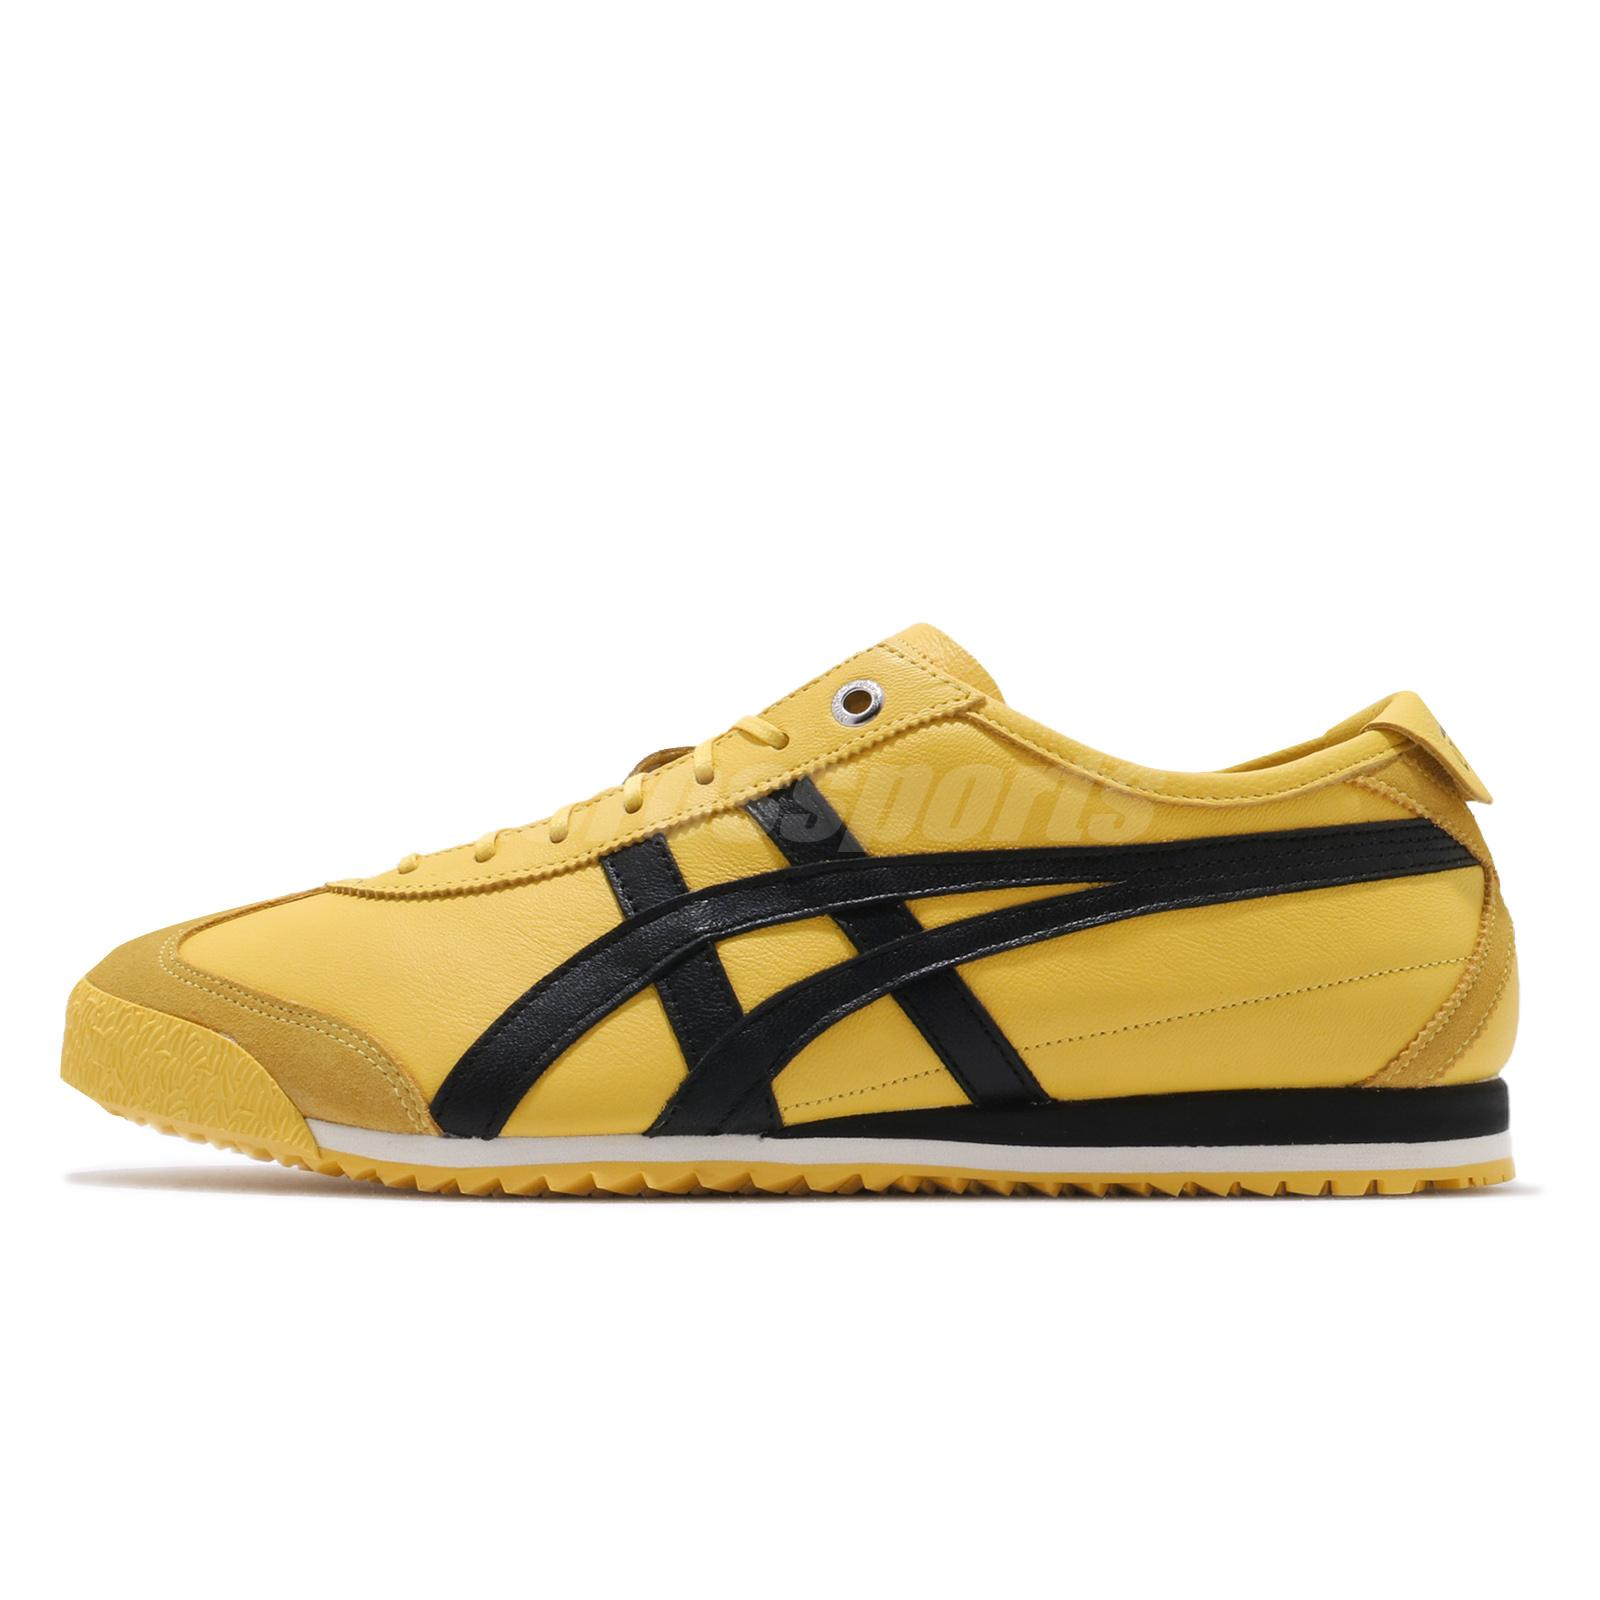 onitsuka tiger mexico 66 sd philippines white zip gold